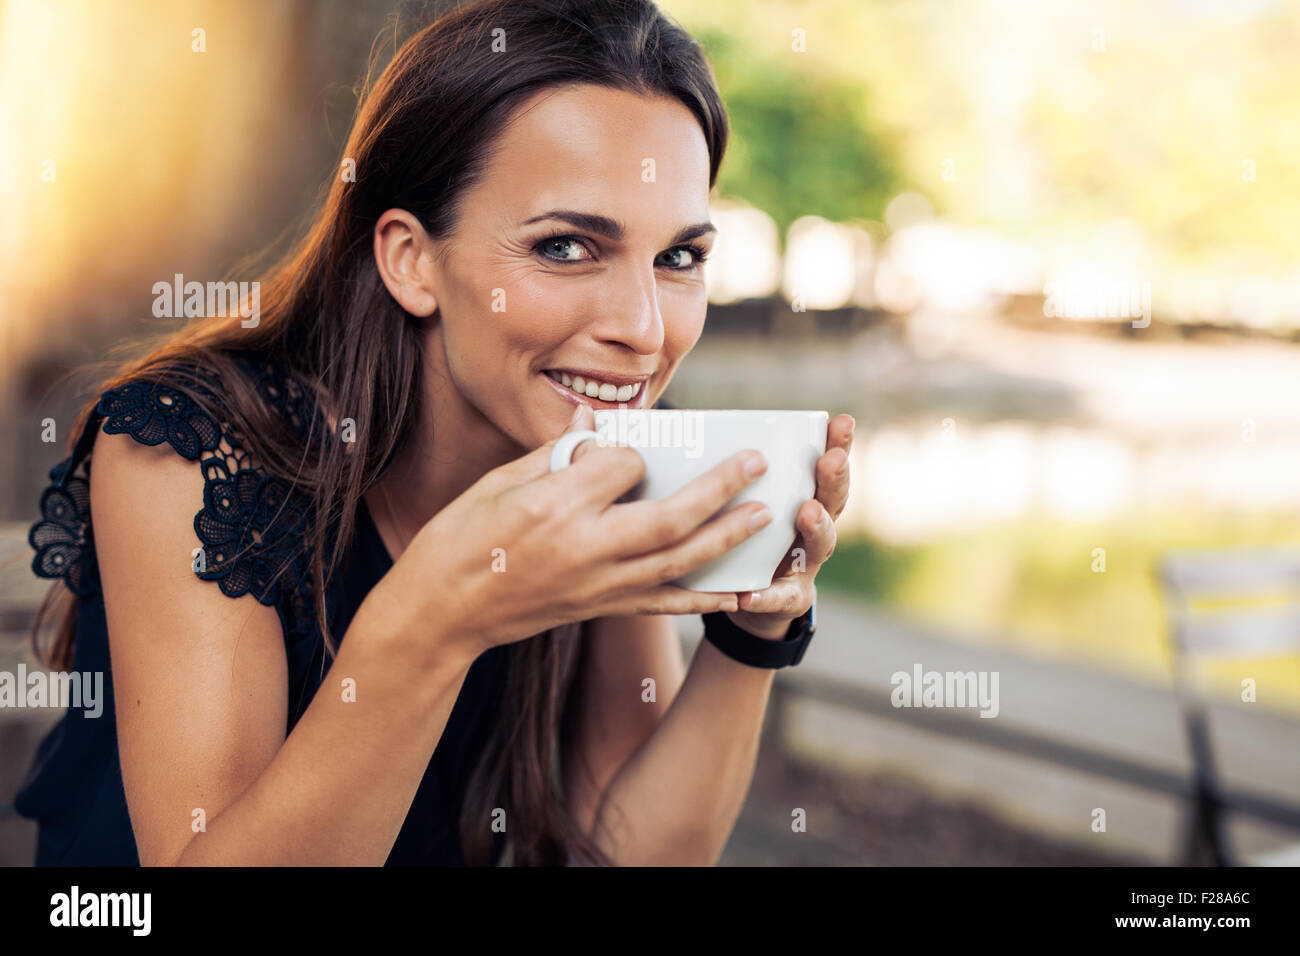 Beautiful young woman holding a cup of coffee looking at camera smiling. Cheerful female enjoying a cup coffee at - Stock Image